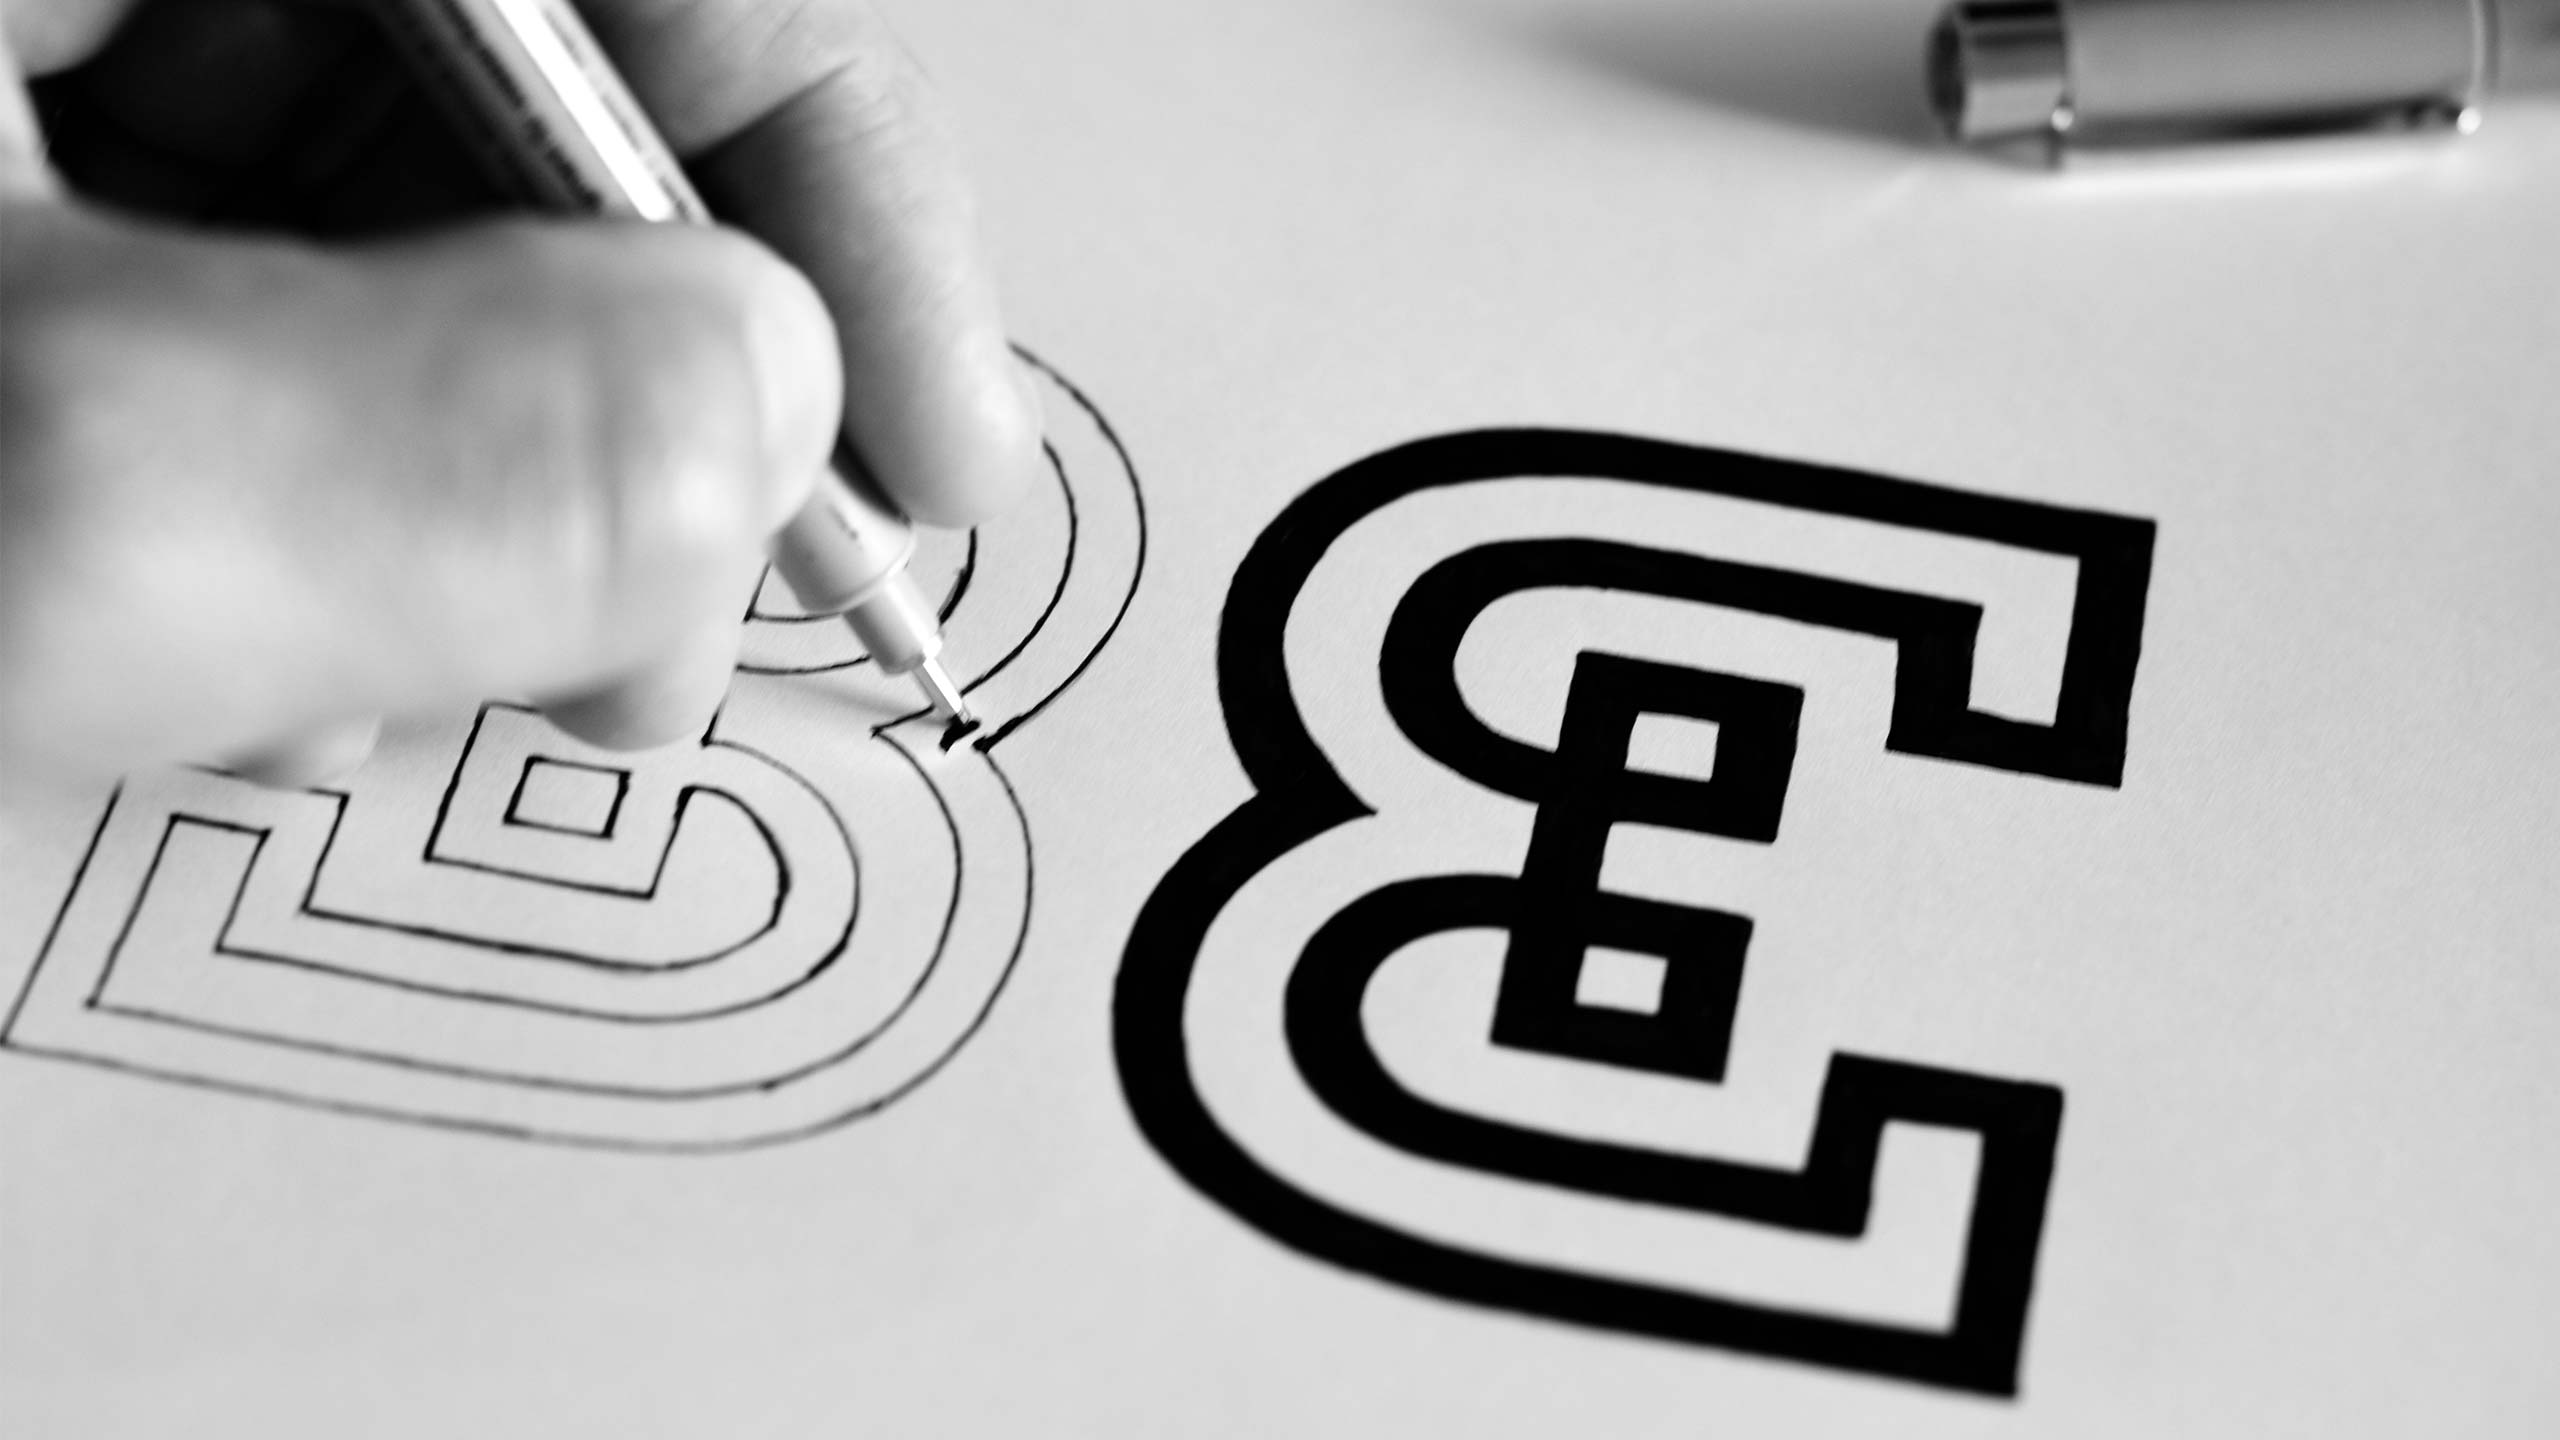 Inking symbol for BE.